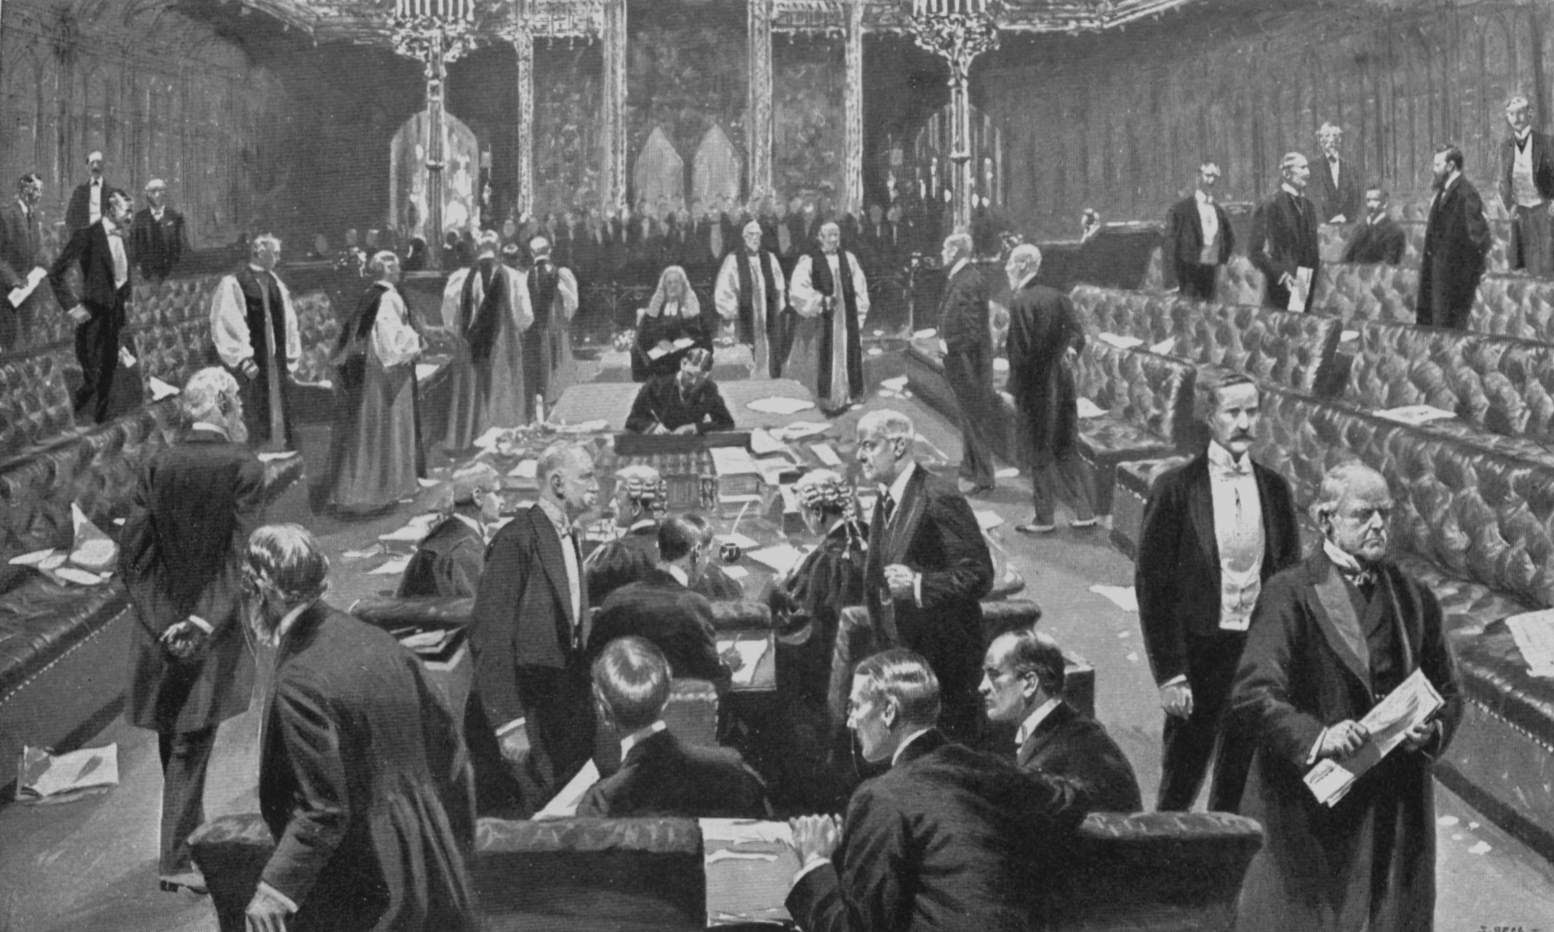 Samuel Begg: Passing of the Parliament Bill in the House of Lords, 1911